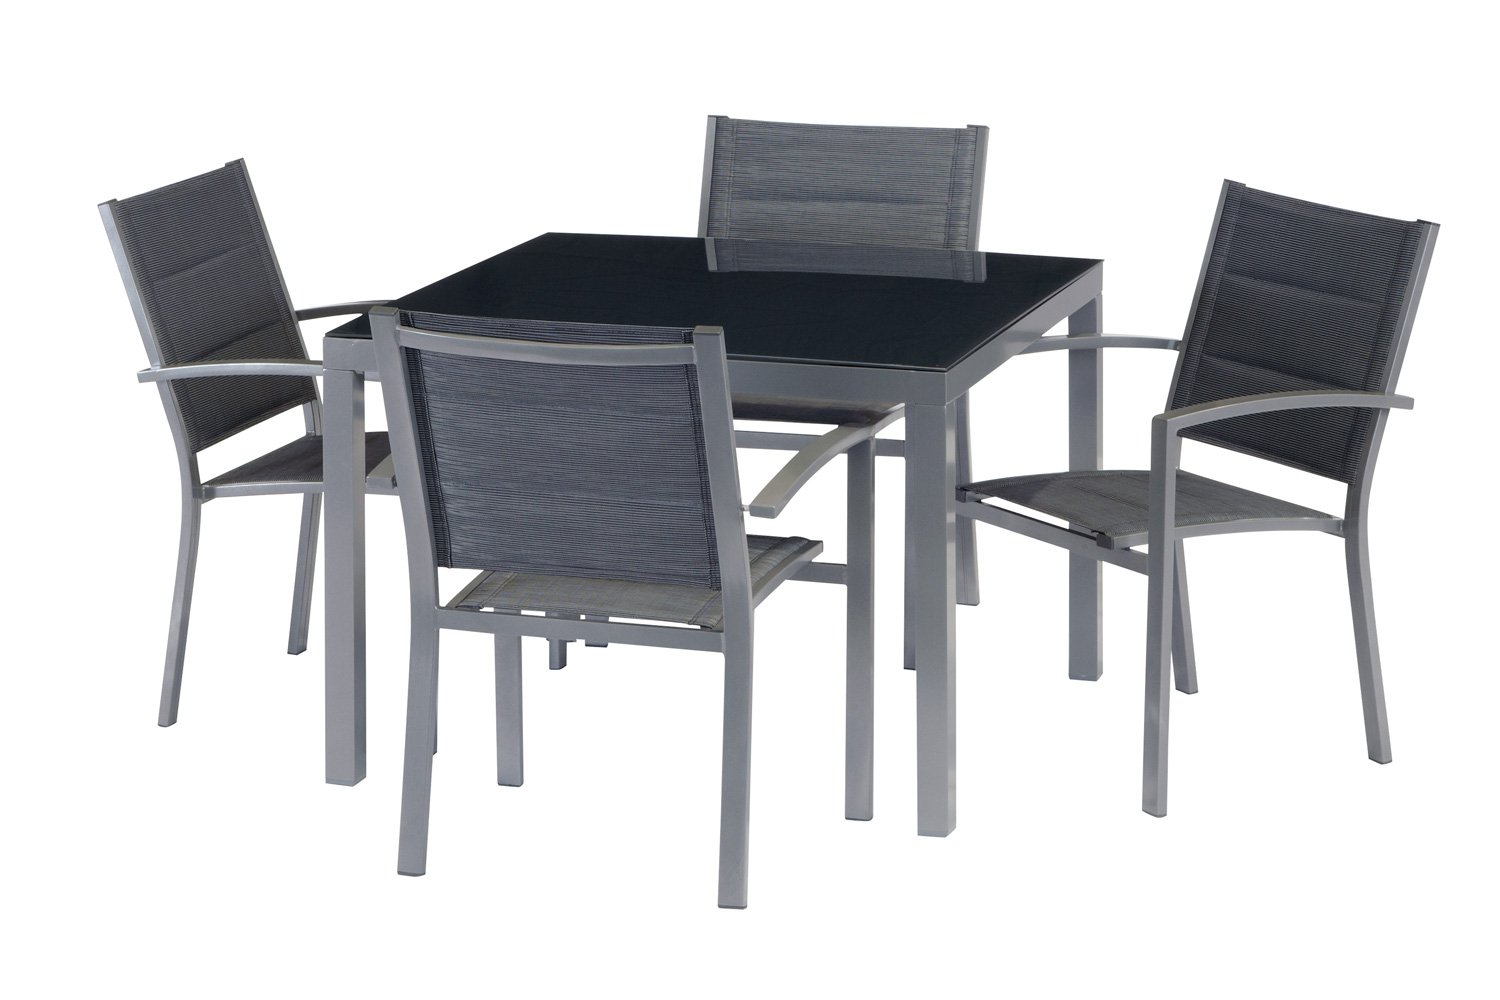 Outdoor furniture rental rent4keeps for Outdoor furniture rental